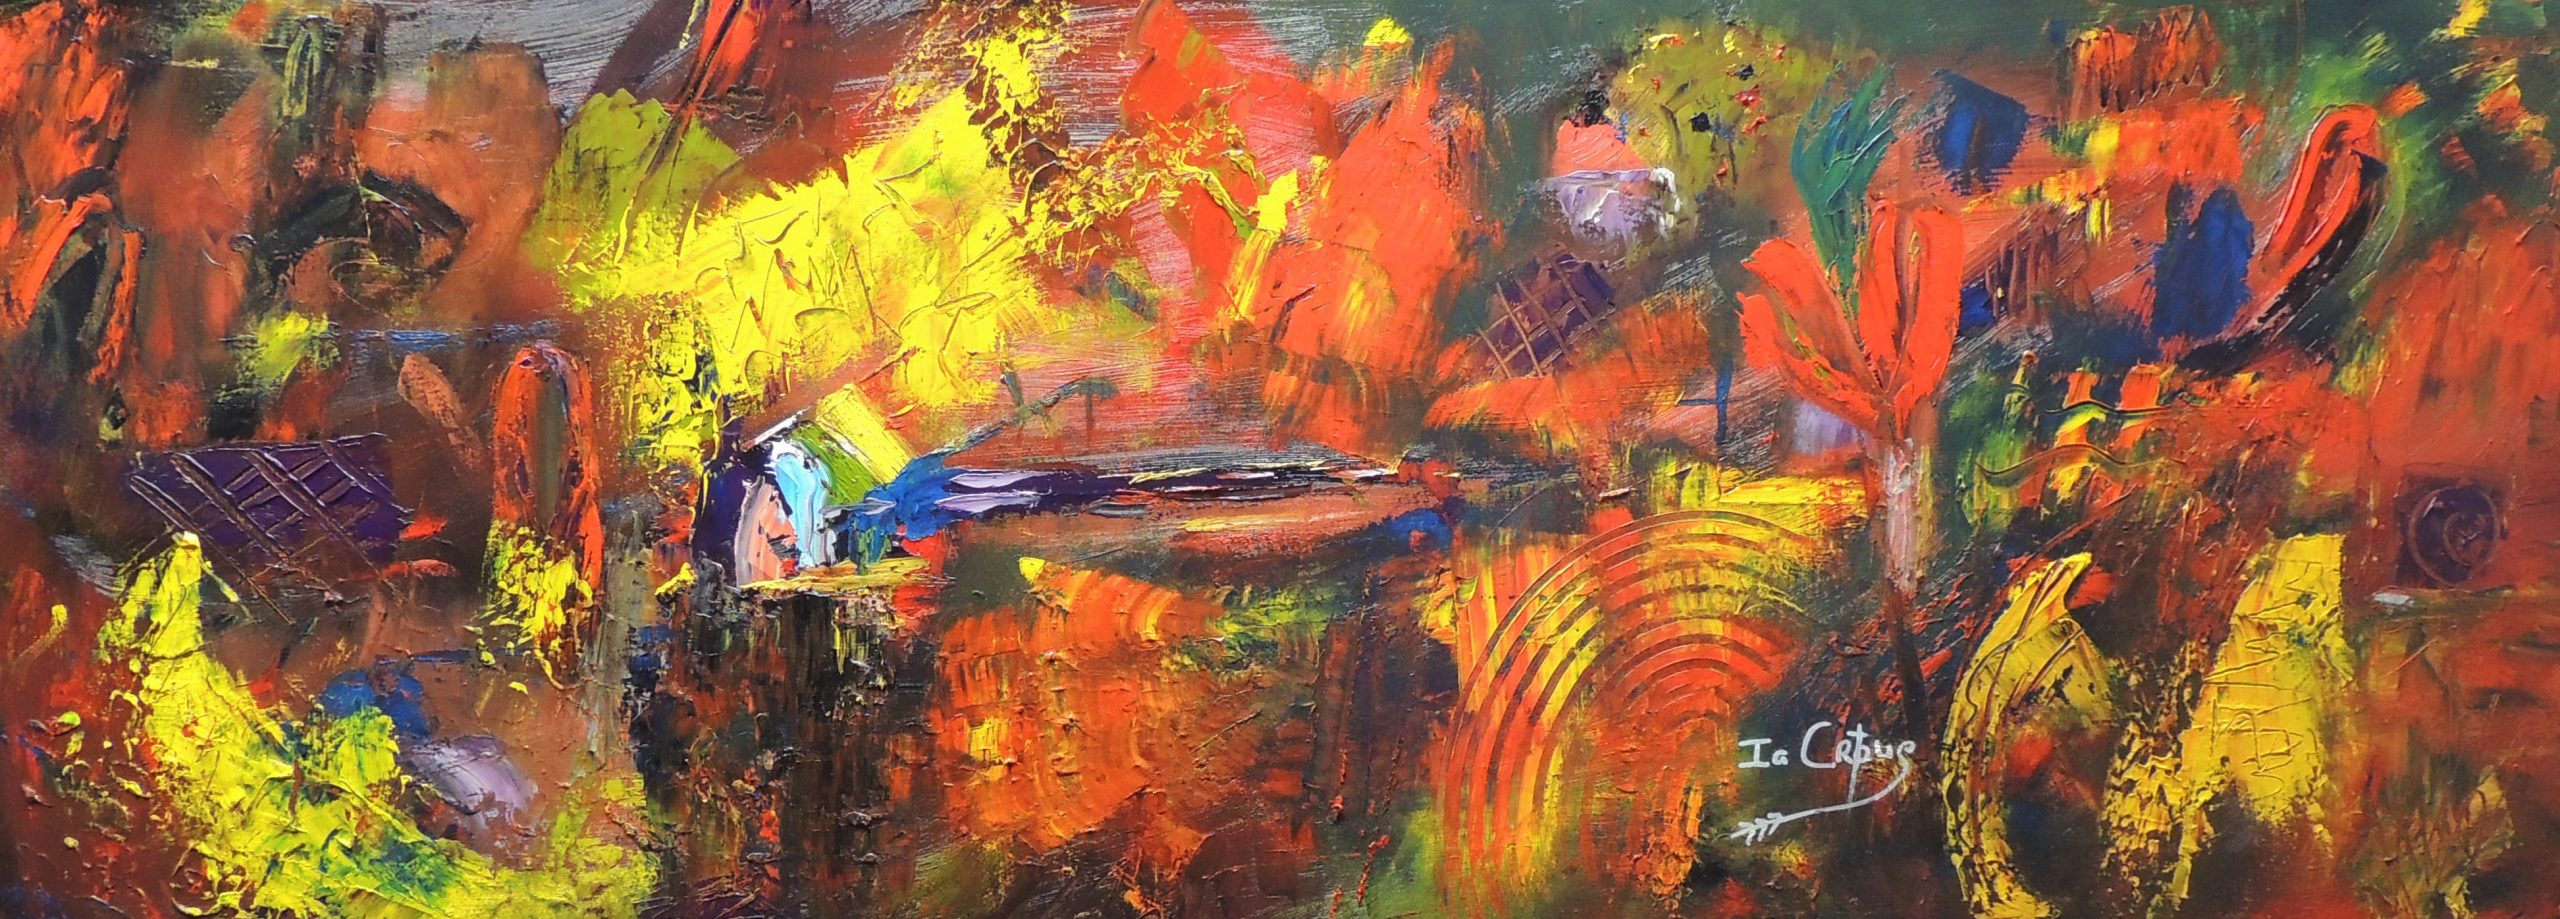 4507 Creativity Burst-Red abstract painting for sale-Warm red and yellow hues on canvas